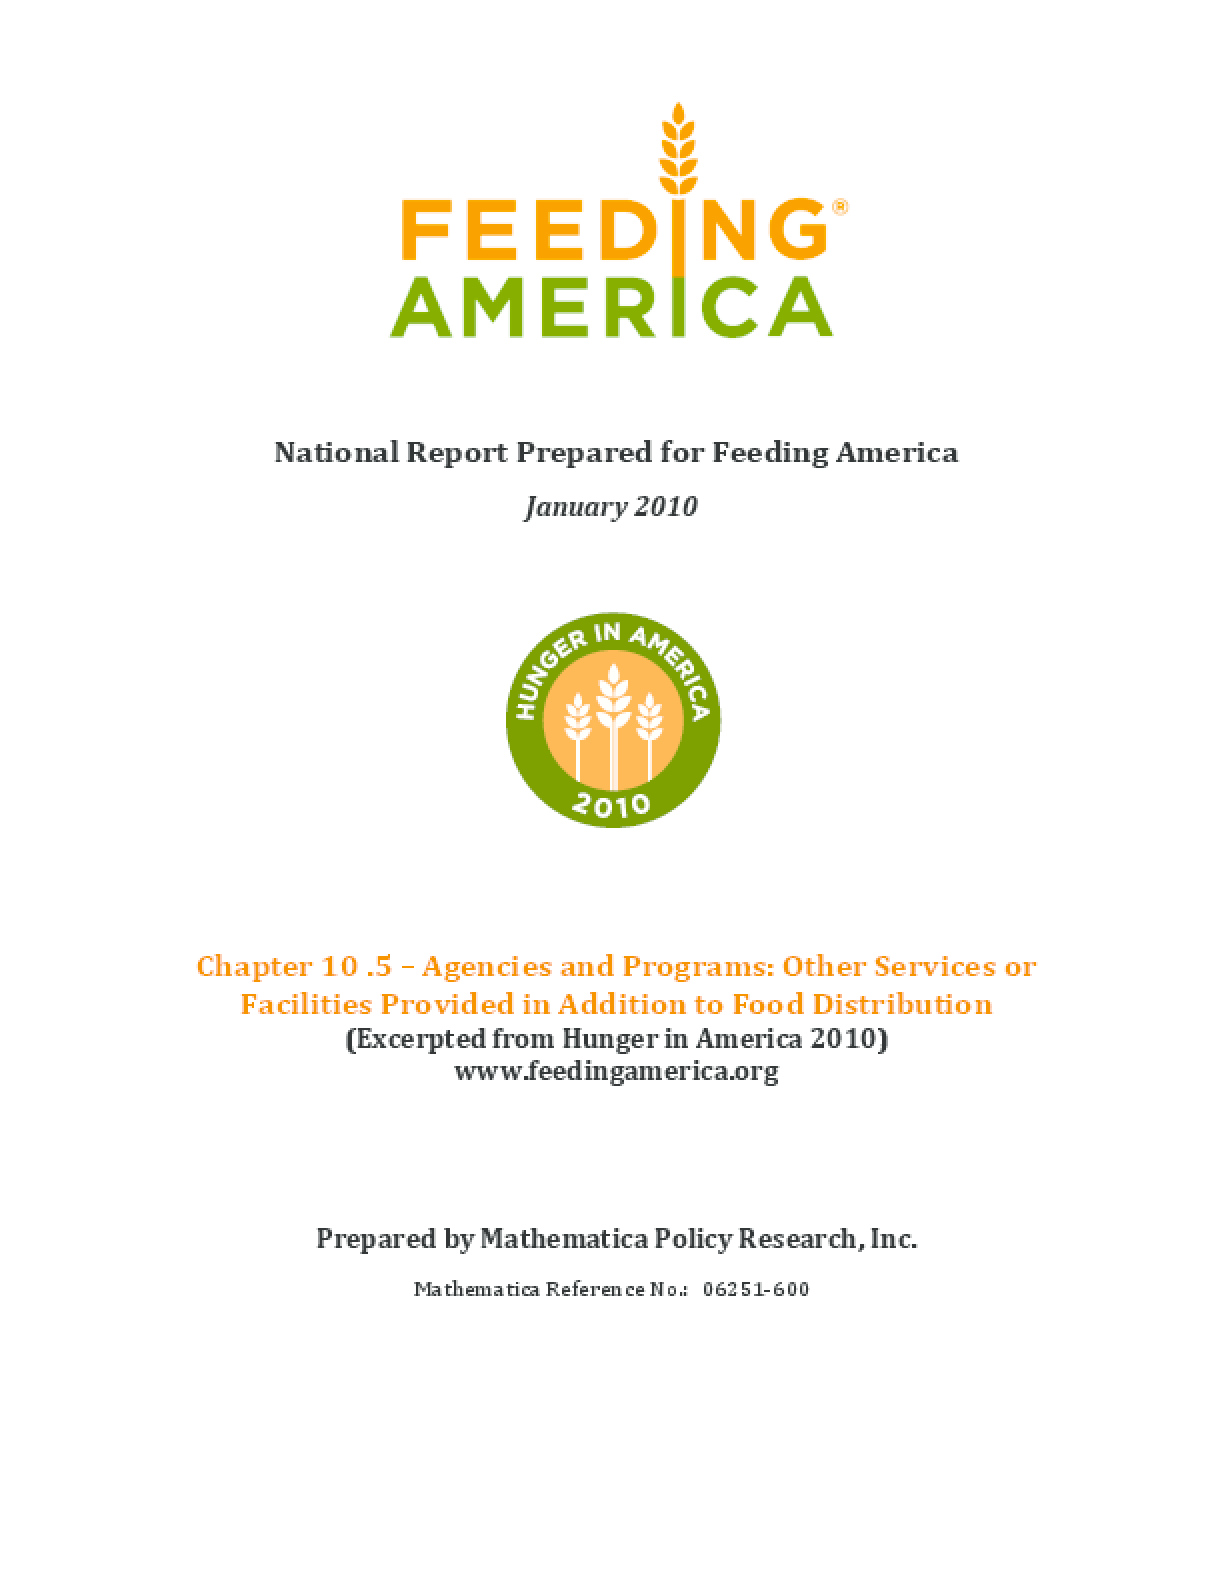 Feeding America Agencies and Food Programs: Other Services or Facilities Provided in Addition to Food Distribution